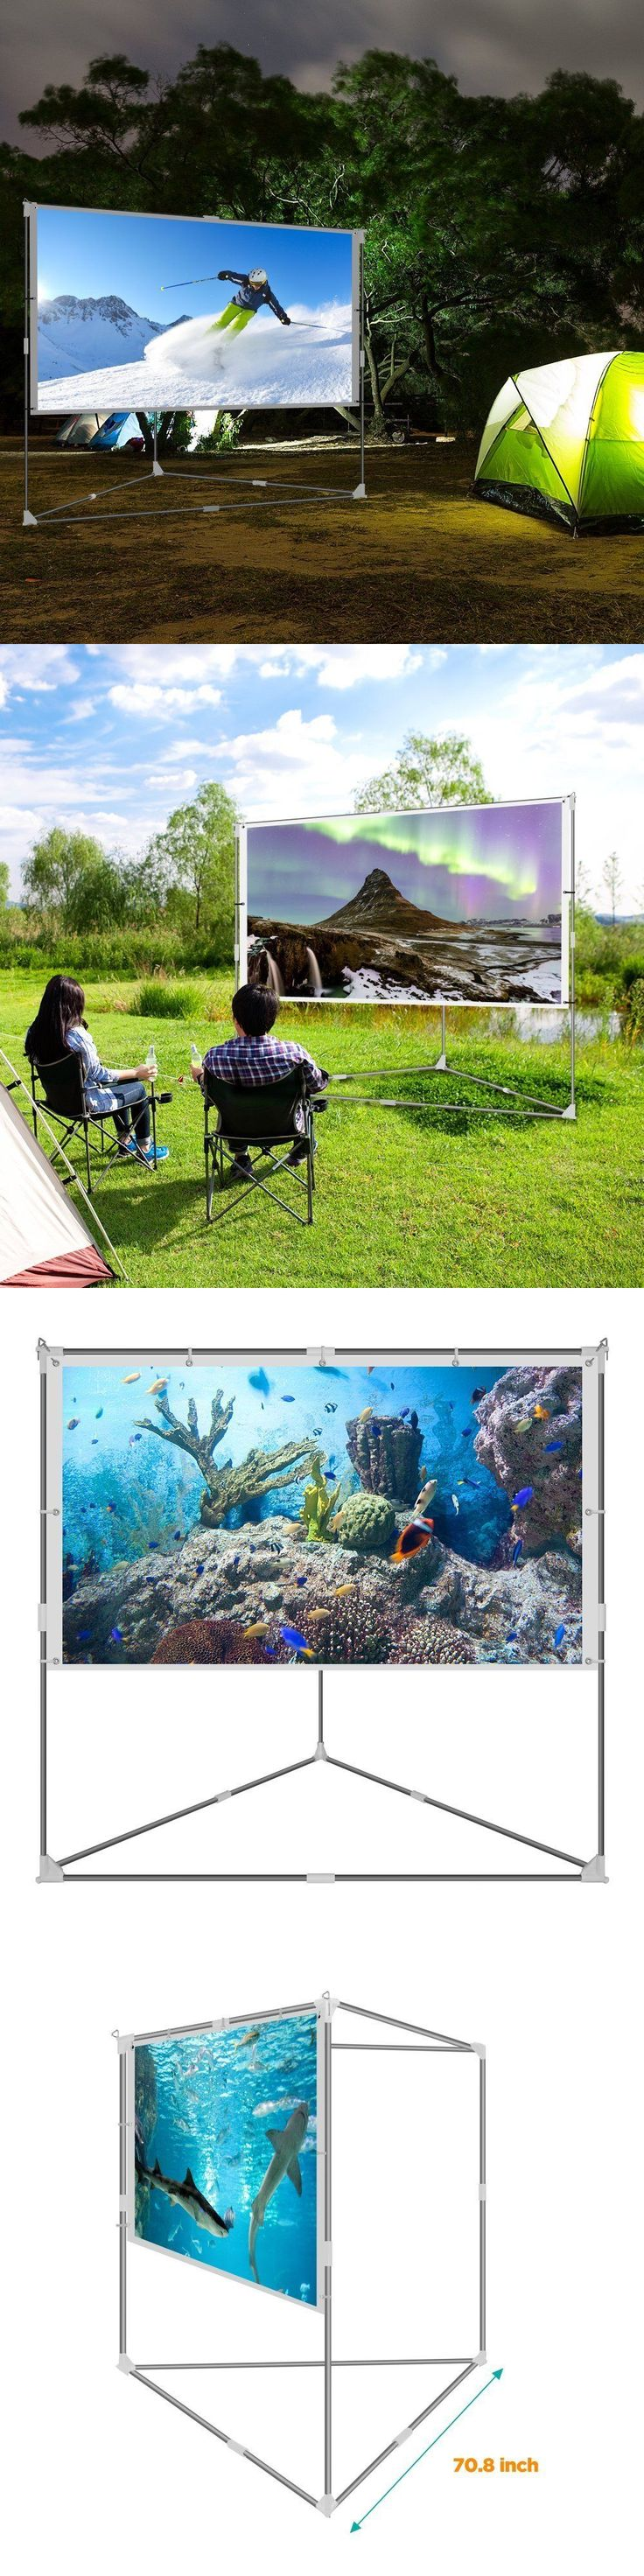 Projection Screens and Material: Outdoor Projector Screen Video Movie Portable Mobile Large Home Backyard Patio BUY IT NOW ONLY: $147.99